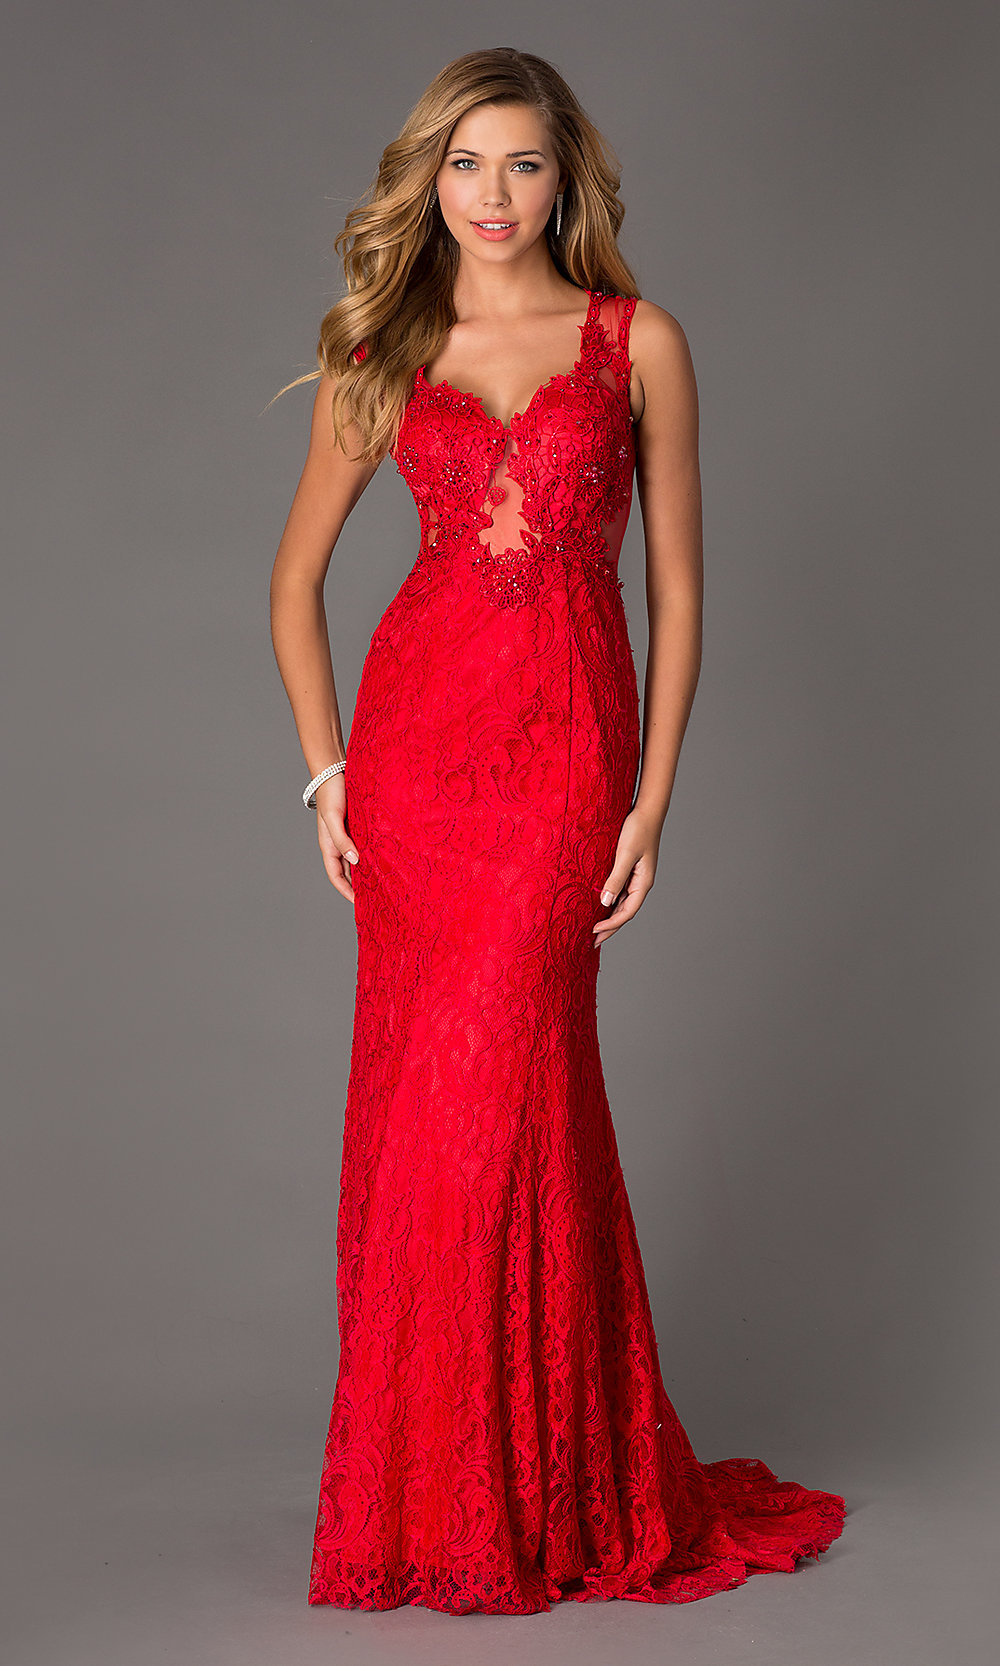 Sleeveless Lace Dress, Swing Prom Gown 3020